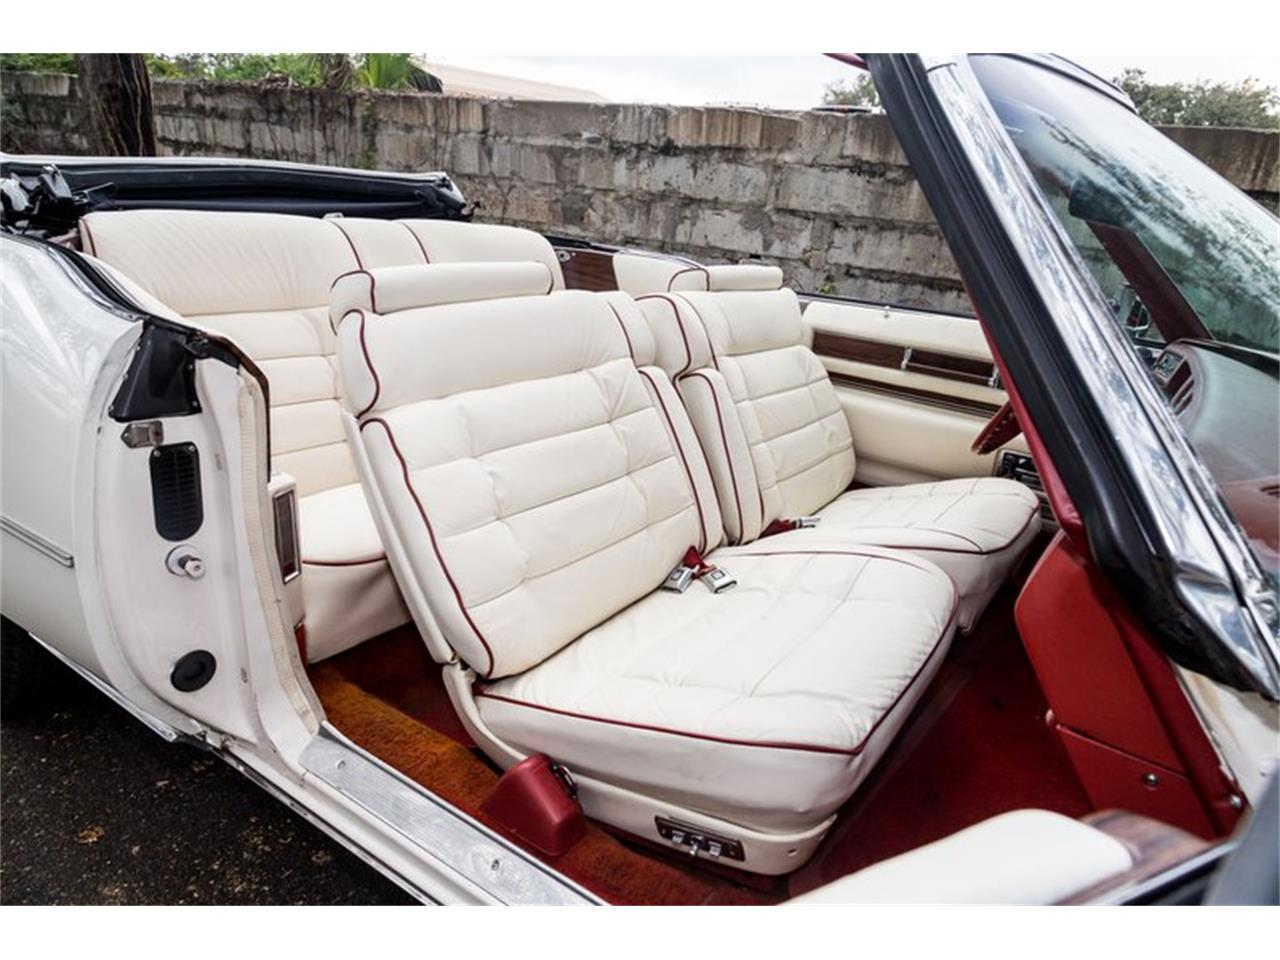 Large Picture of 1976 Cadillac Eldorado located in Florida - $45,000.00 - N93X